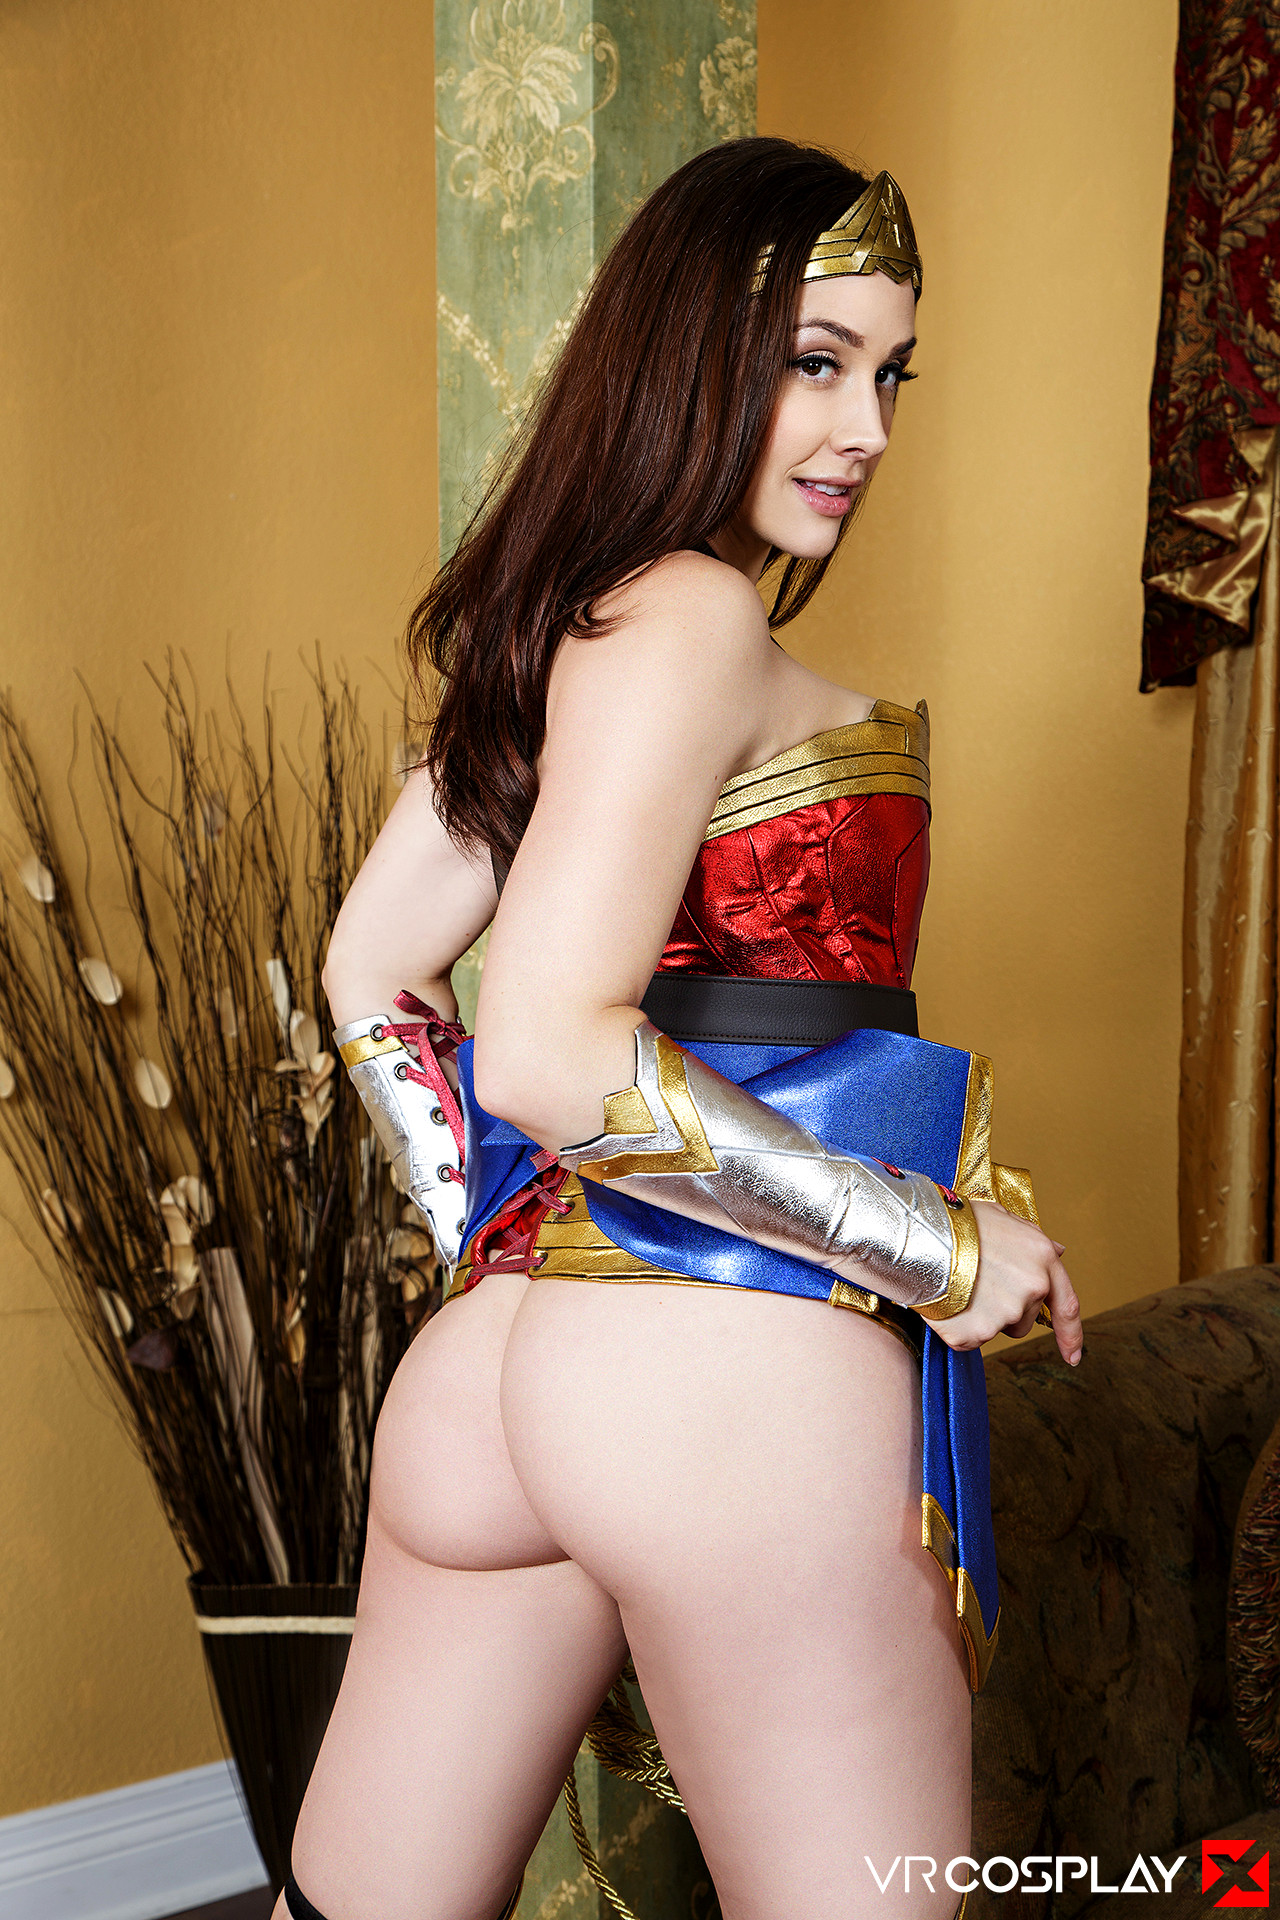 Nelly as wonderwoman